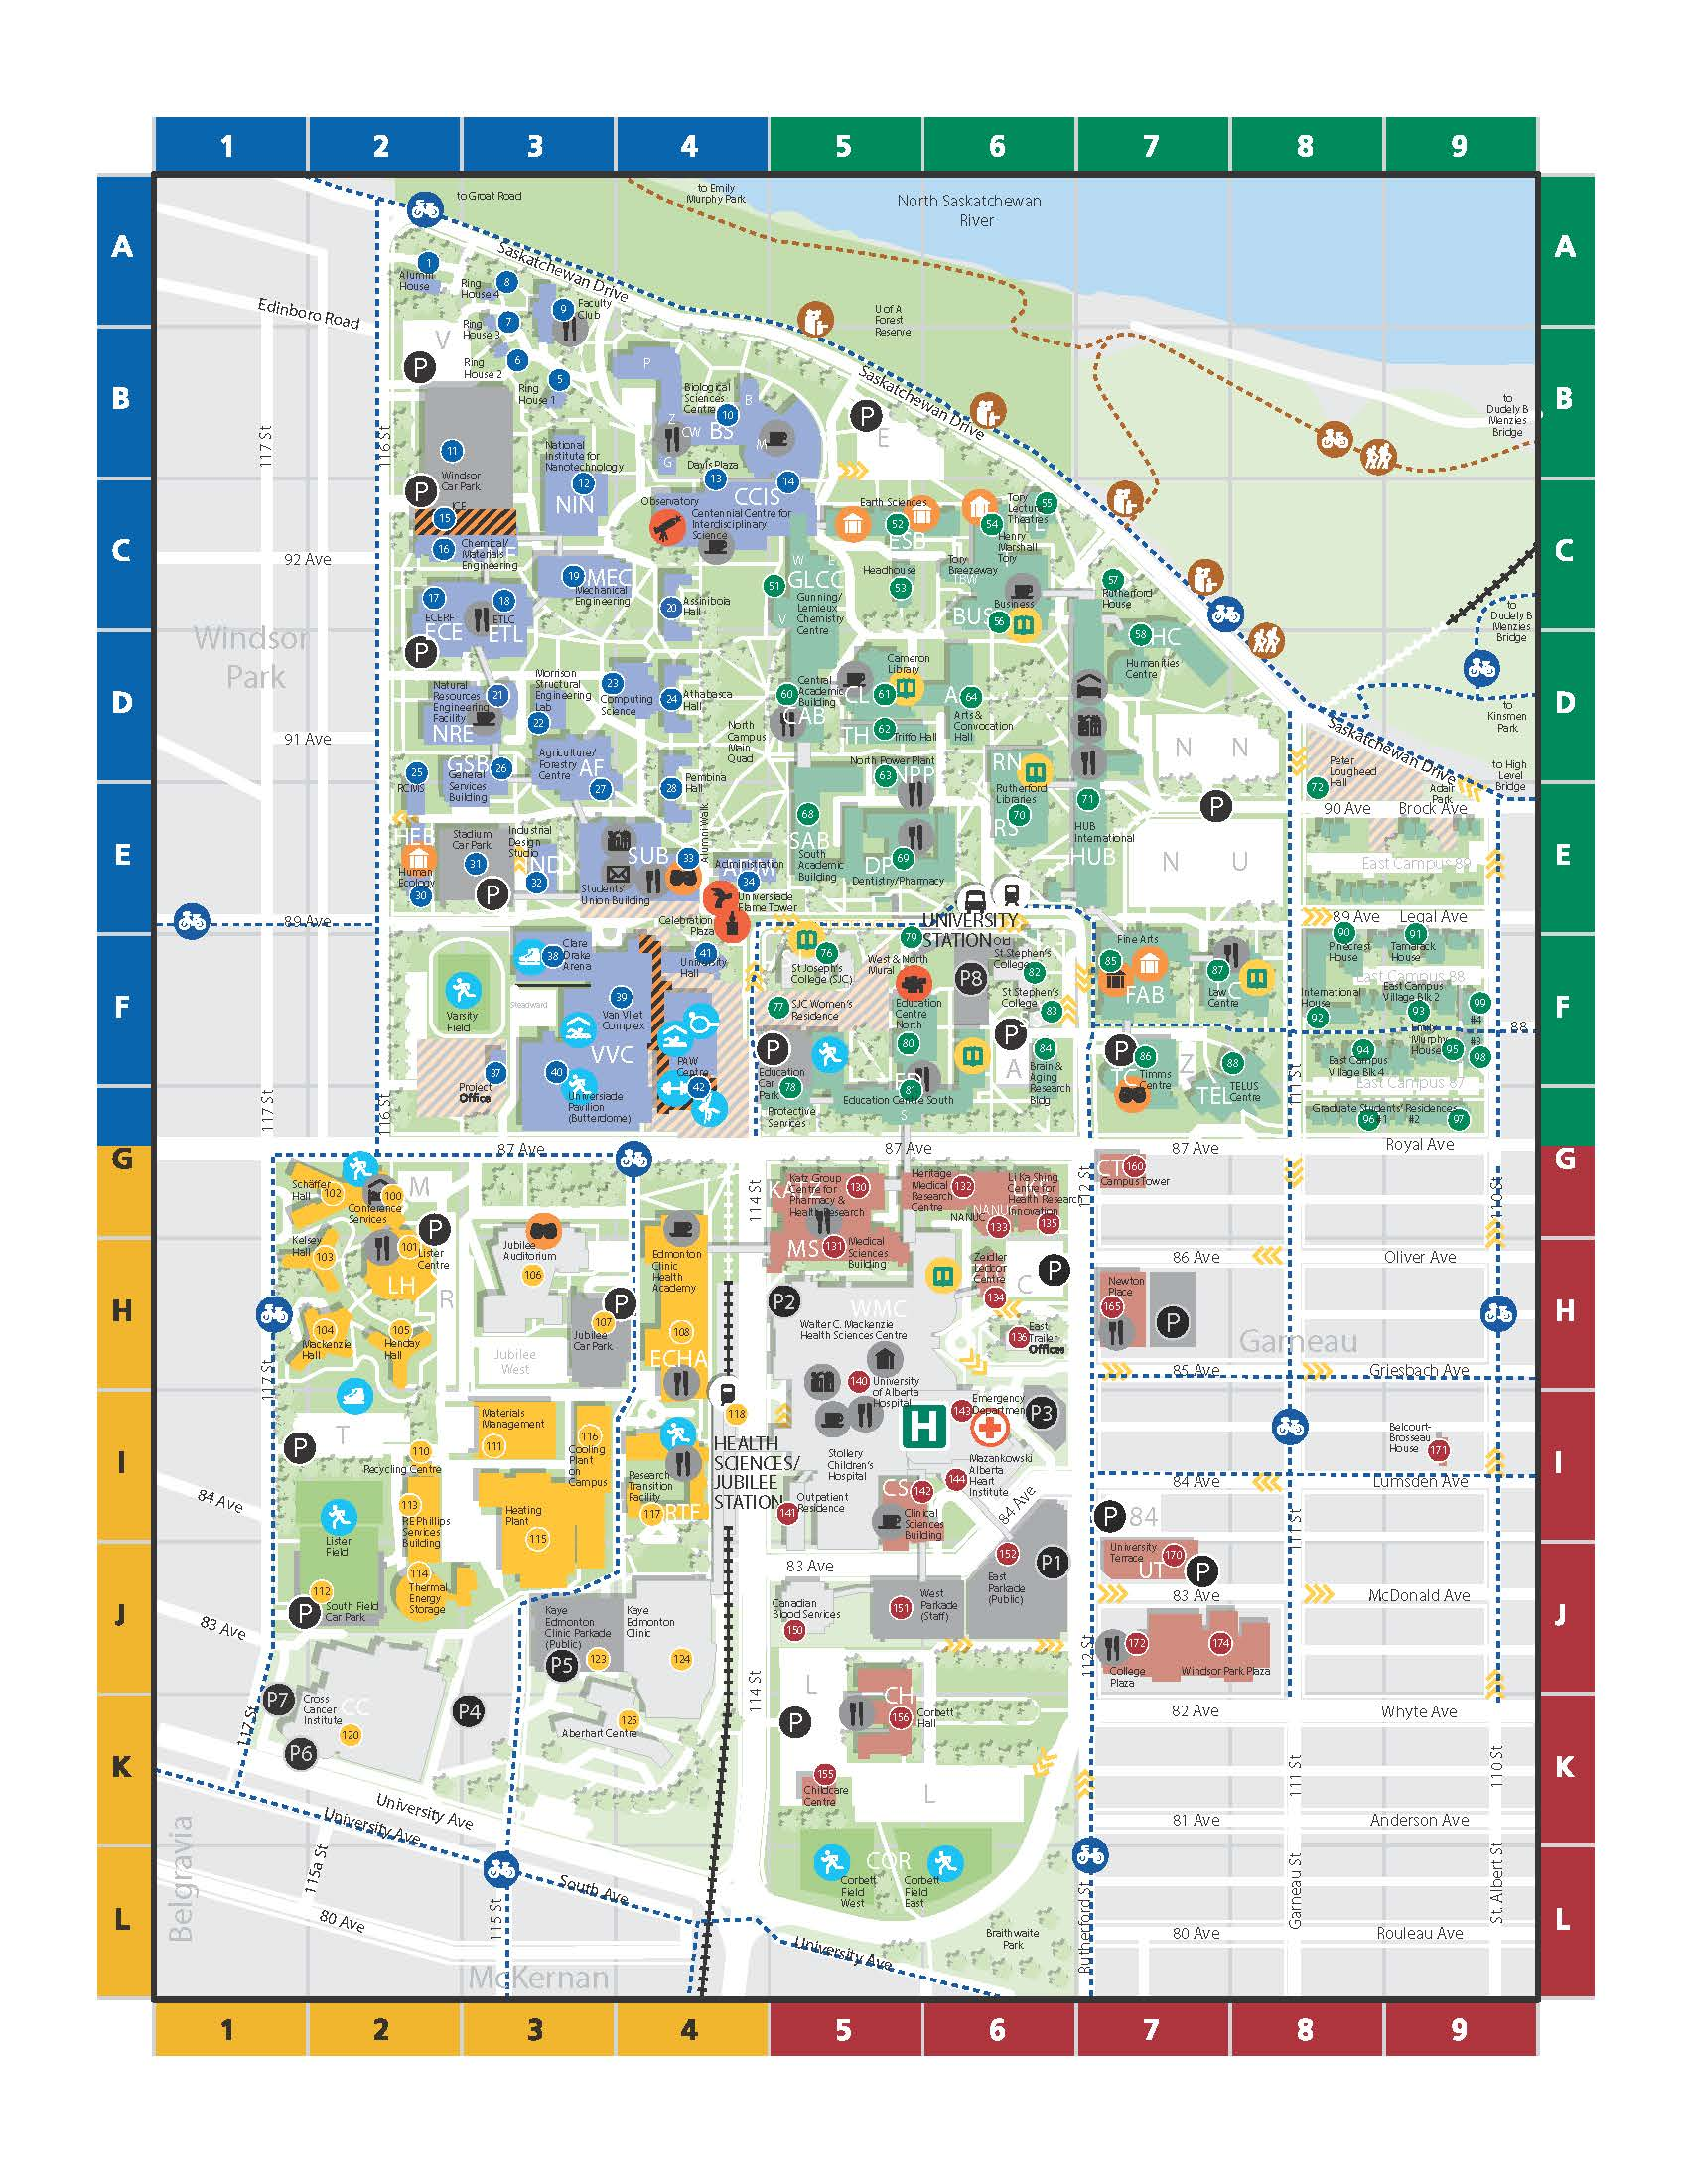 University Of Alberta Campus Map Campus Map – WDCAG 2018 University Of Alberta Campus Map